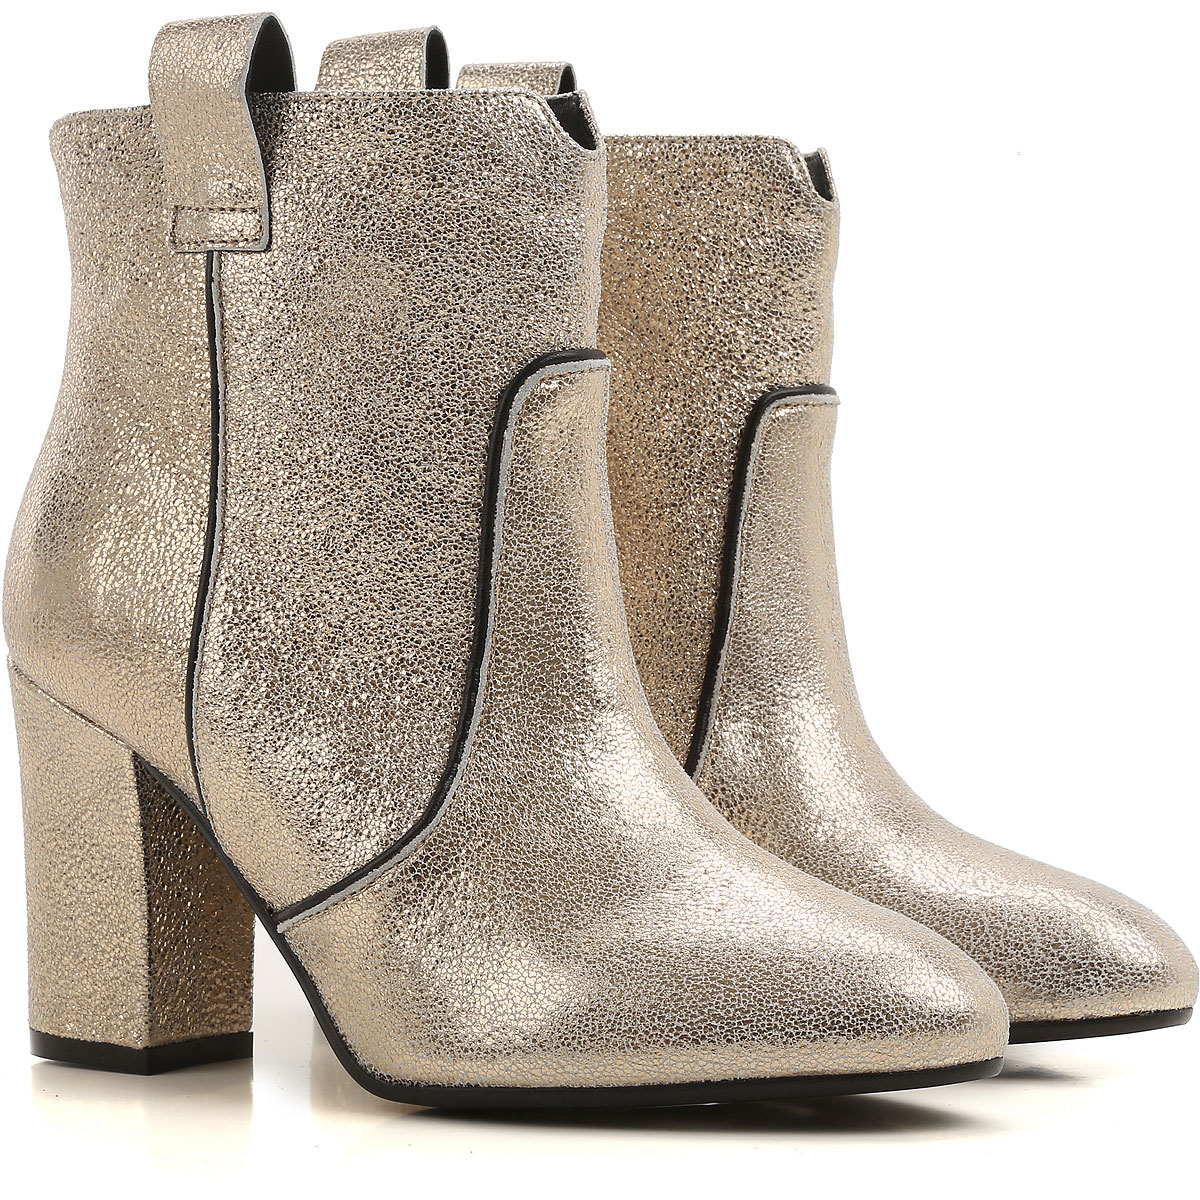 ESSENTIEL Antwerp Boots for Women, Booties On Sale in Outlet, Champagne, Leather, 2019, 8 9